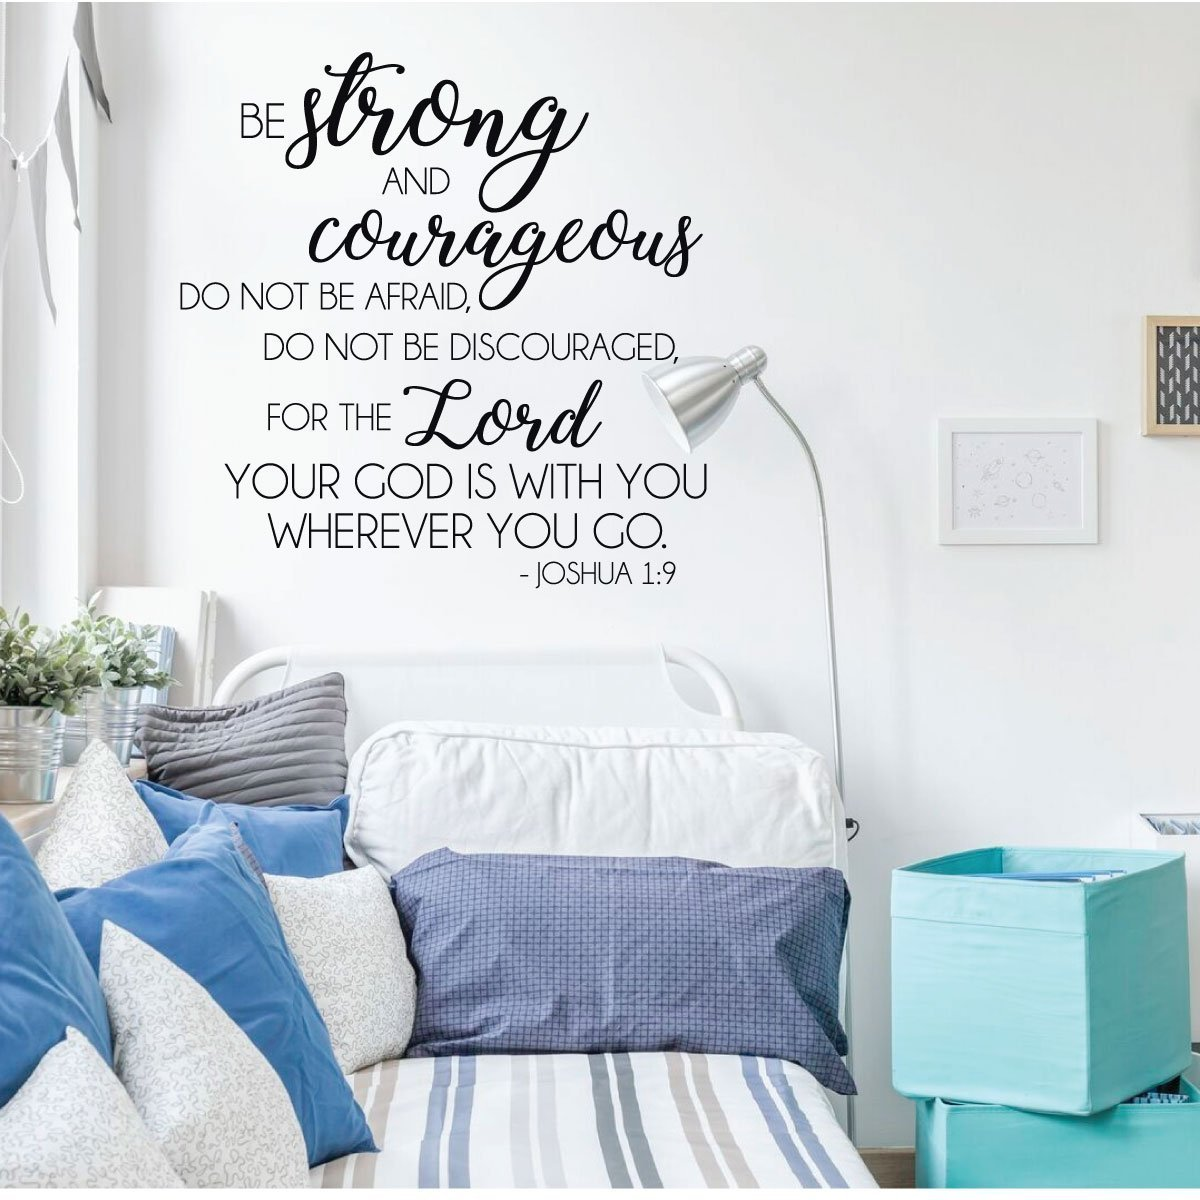 Christian Wall Decal - Bible Verse Wall Decal - Joshua 1:9 - Be Strong And Courageous